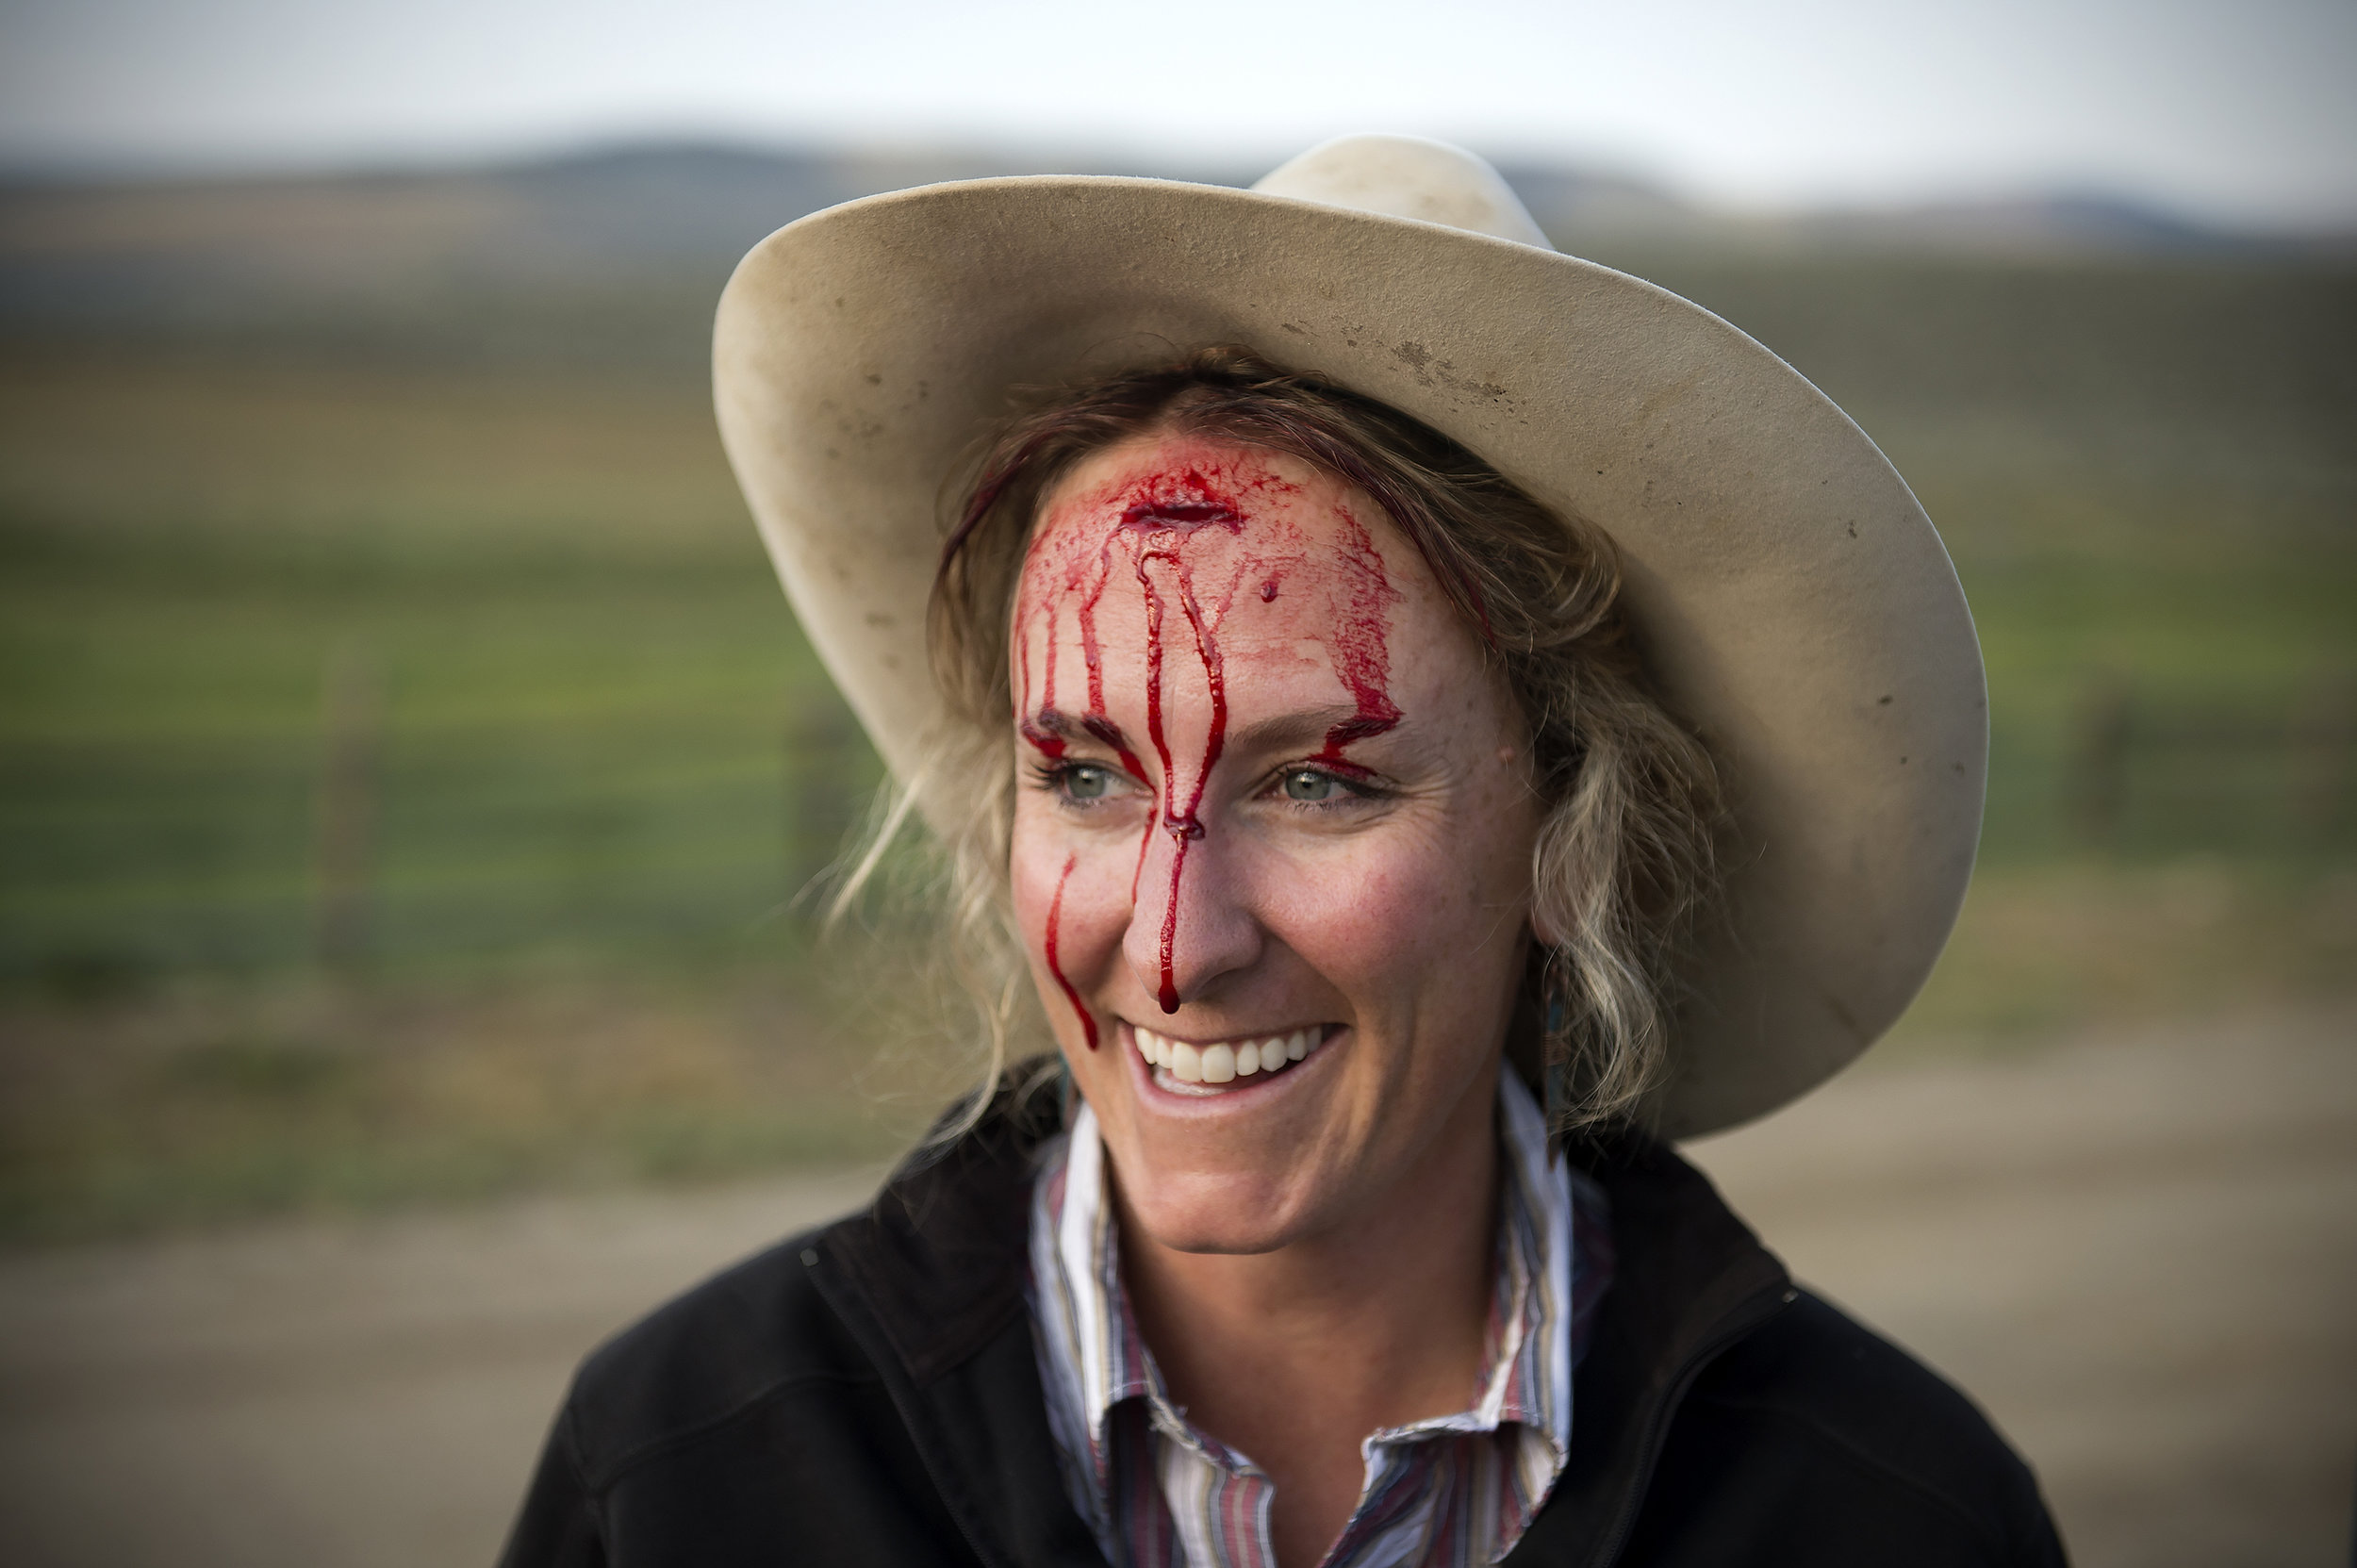 AMANDA LUCIER |  www.amandalucier.com  |  @amandalucier   Caitlyn Taussig, a rancher in Kremmling, Co., smiles as blood drips down her face after a gate hit her in the head while she was loading cattle on the ranch she runs with her mother and sister.